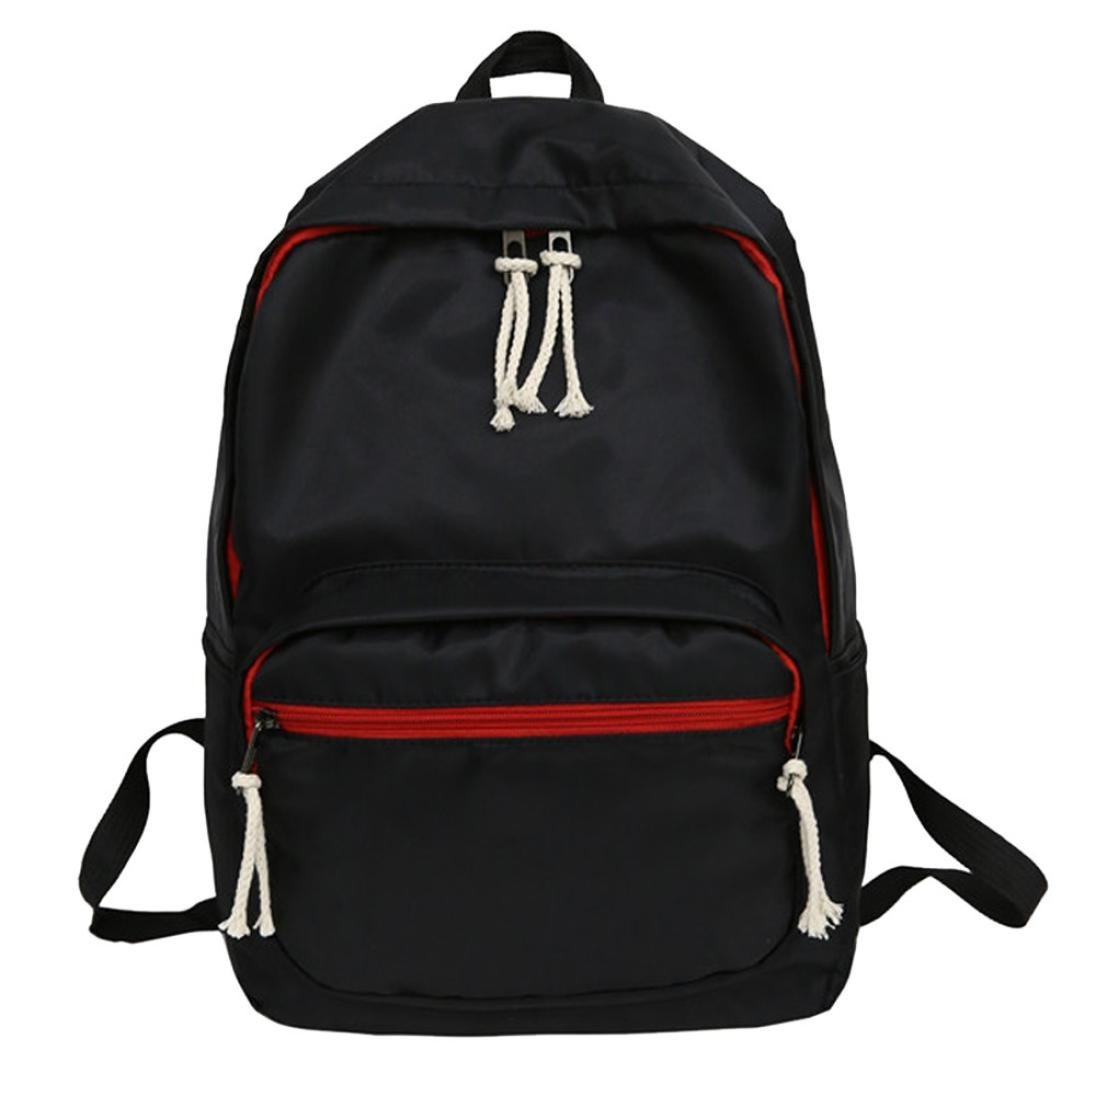 Outsta Pure Color Nylon Backpack,2018New Couple Students School Bag Travel Tote Travel Waterproof Shoulder Bag Casual Multicolor Cute (Black) by Outsta